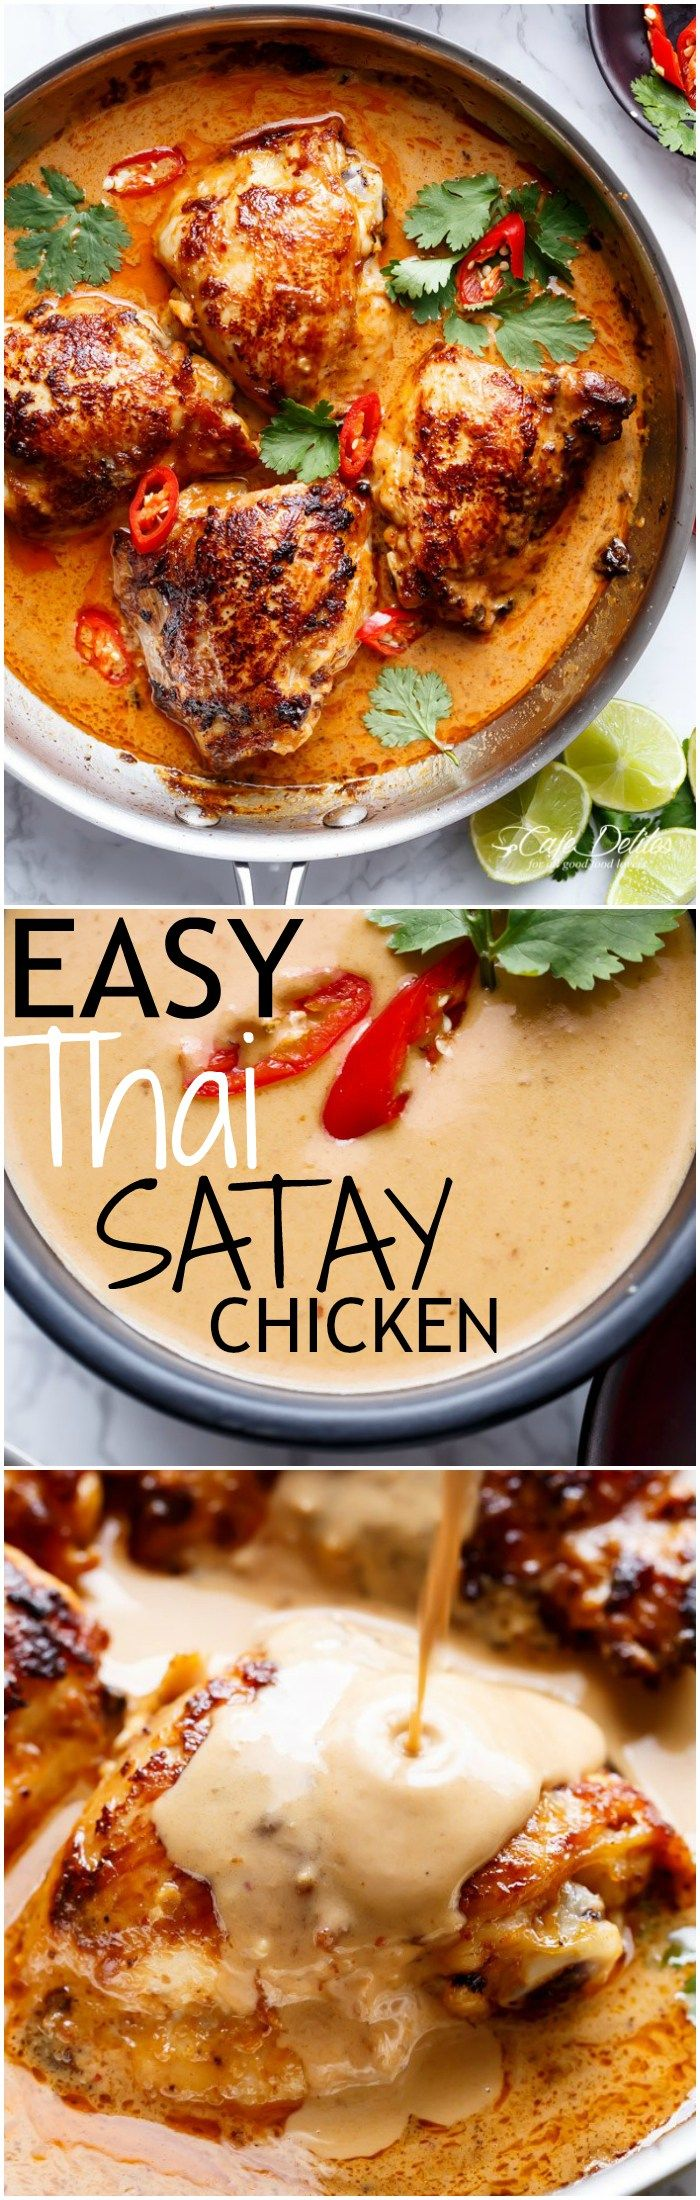 Thai Satay Chicken In A Creamy Peanut Sauce with a special ingredient that makes this satay something spectacular in minutes! | http://cafedelites.stfi.re